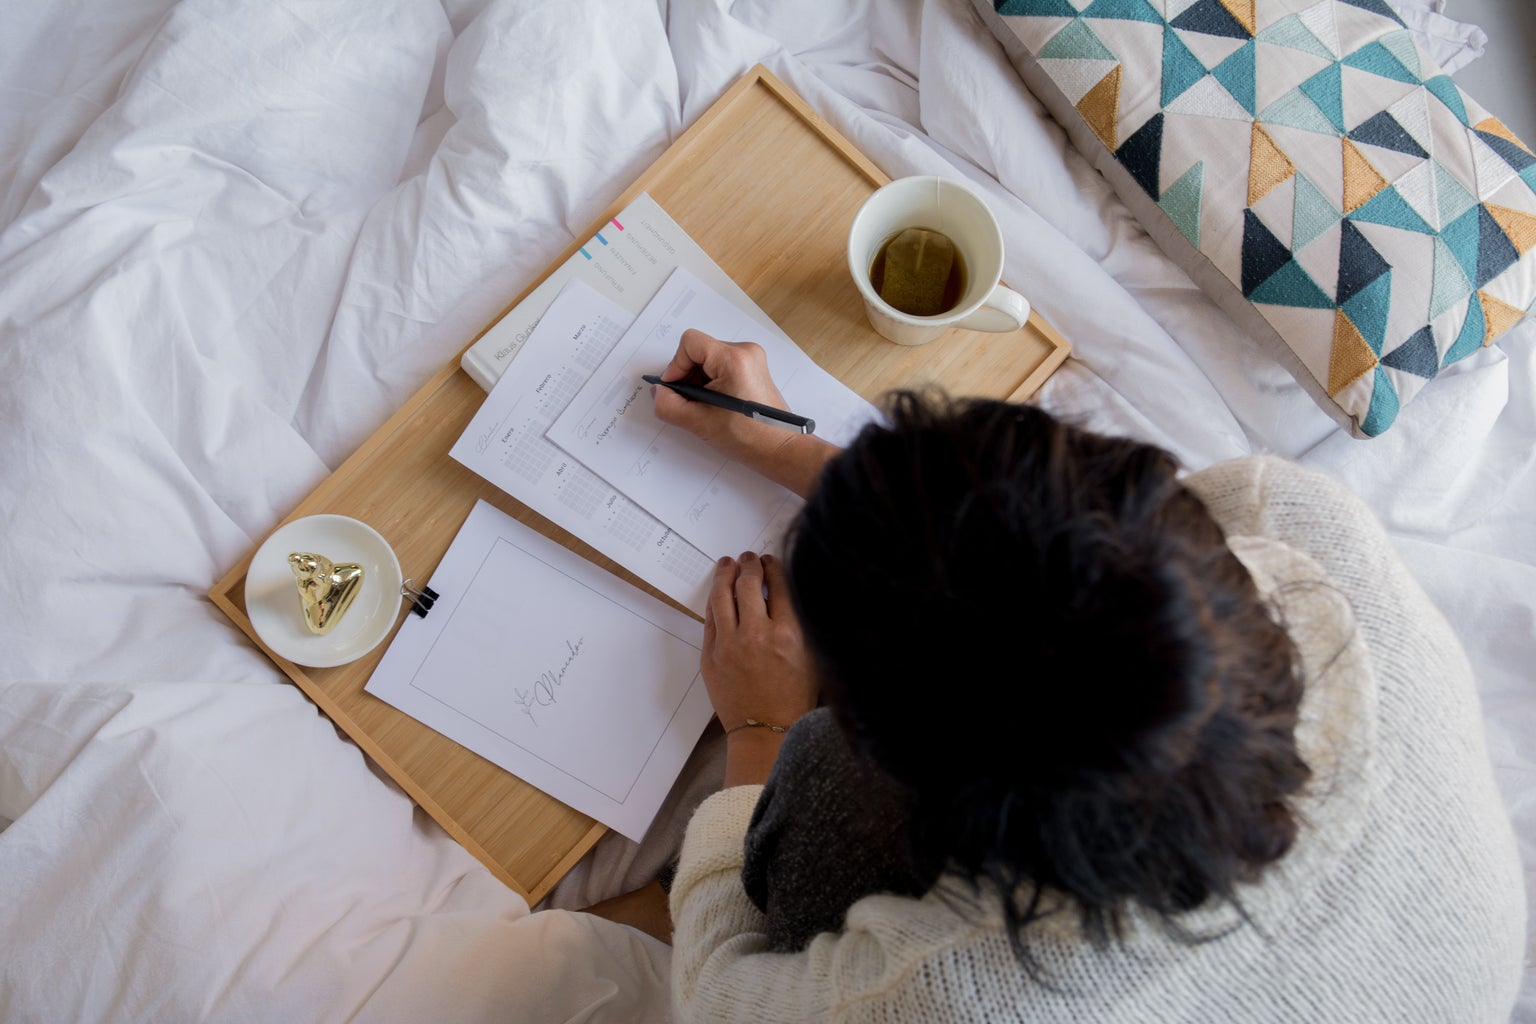 A girl si in a bed writing and drinking coffee